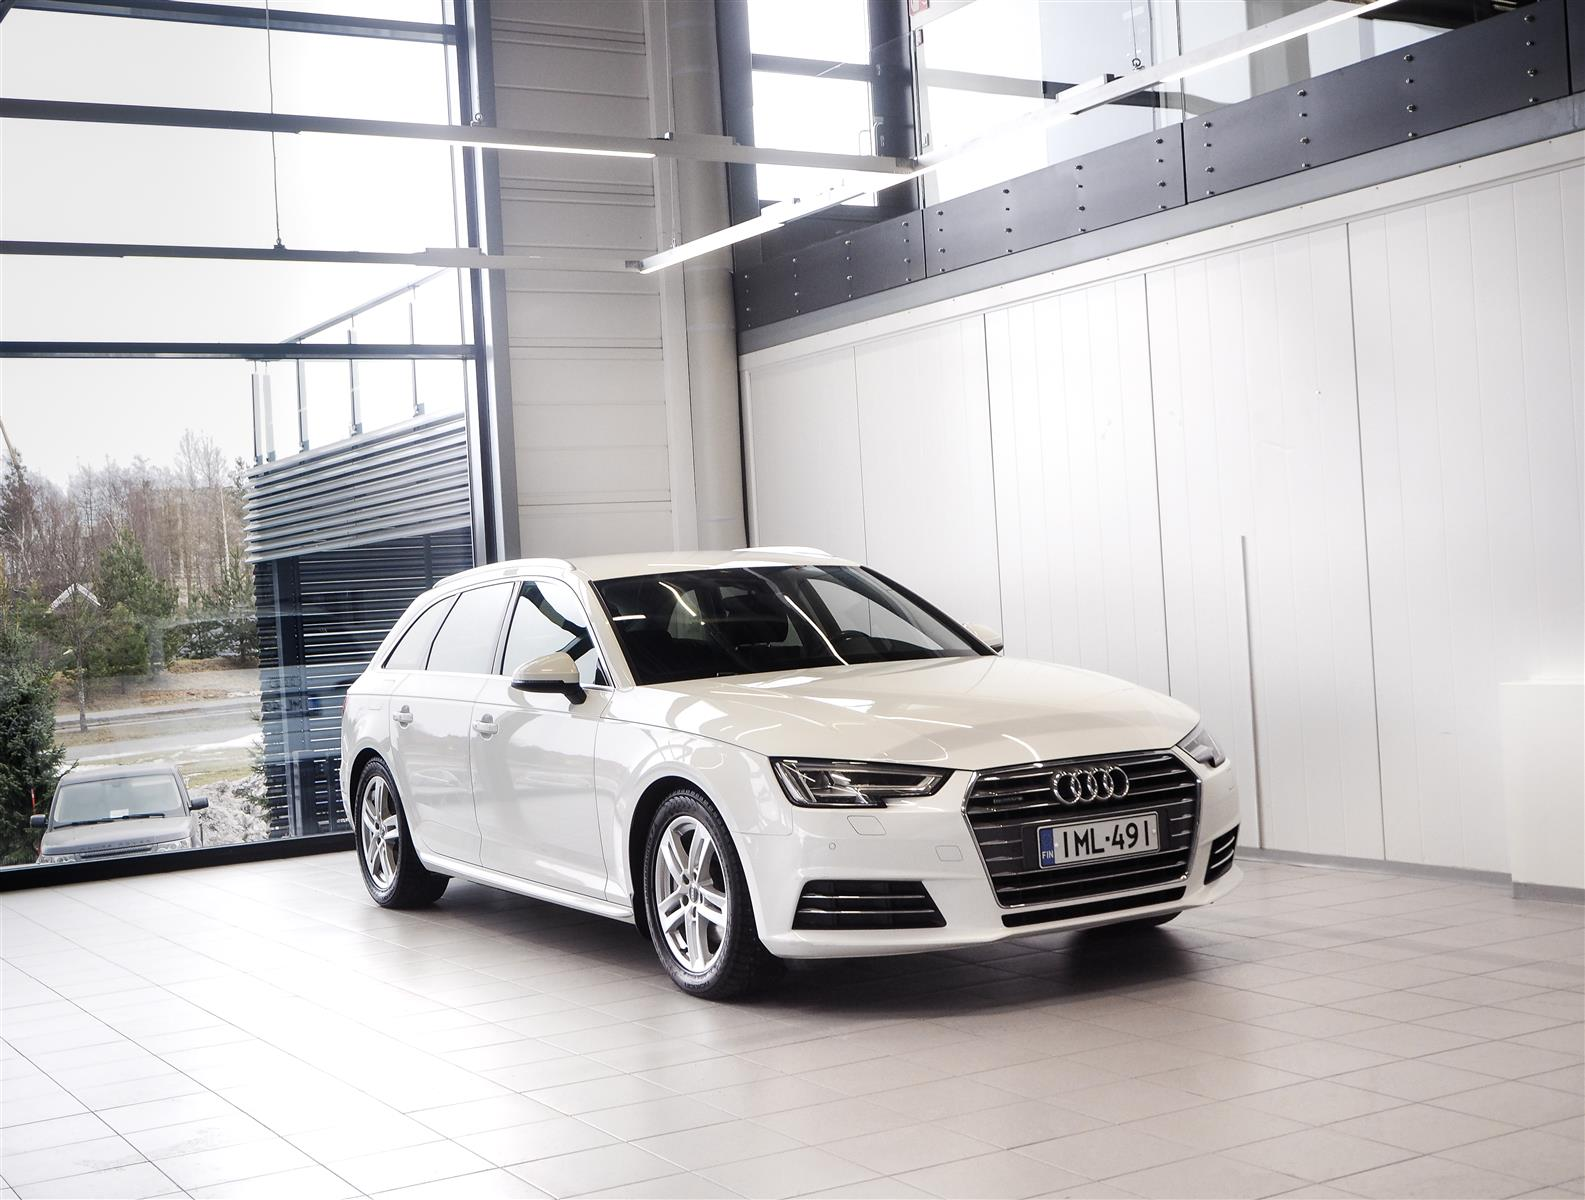 Audi A4 2,0 TDI Avant Quattro First Edition Business Sport Aut + Bluetooth + LED-valot + Tutkat